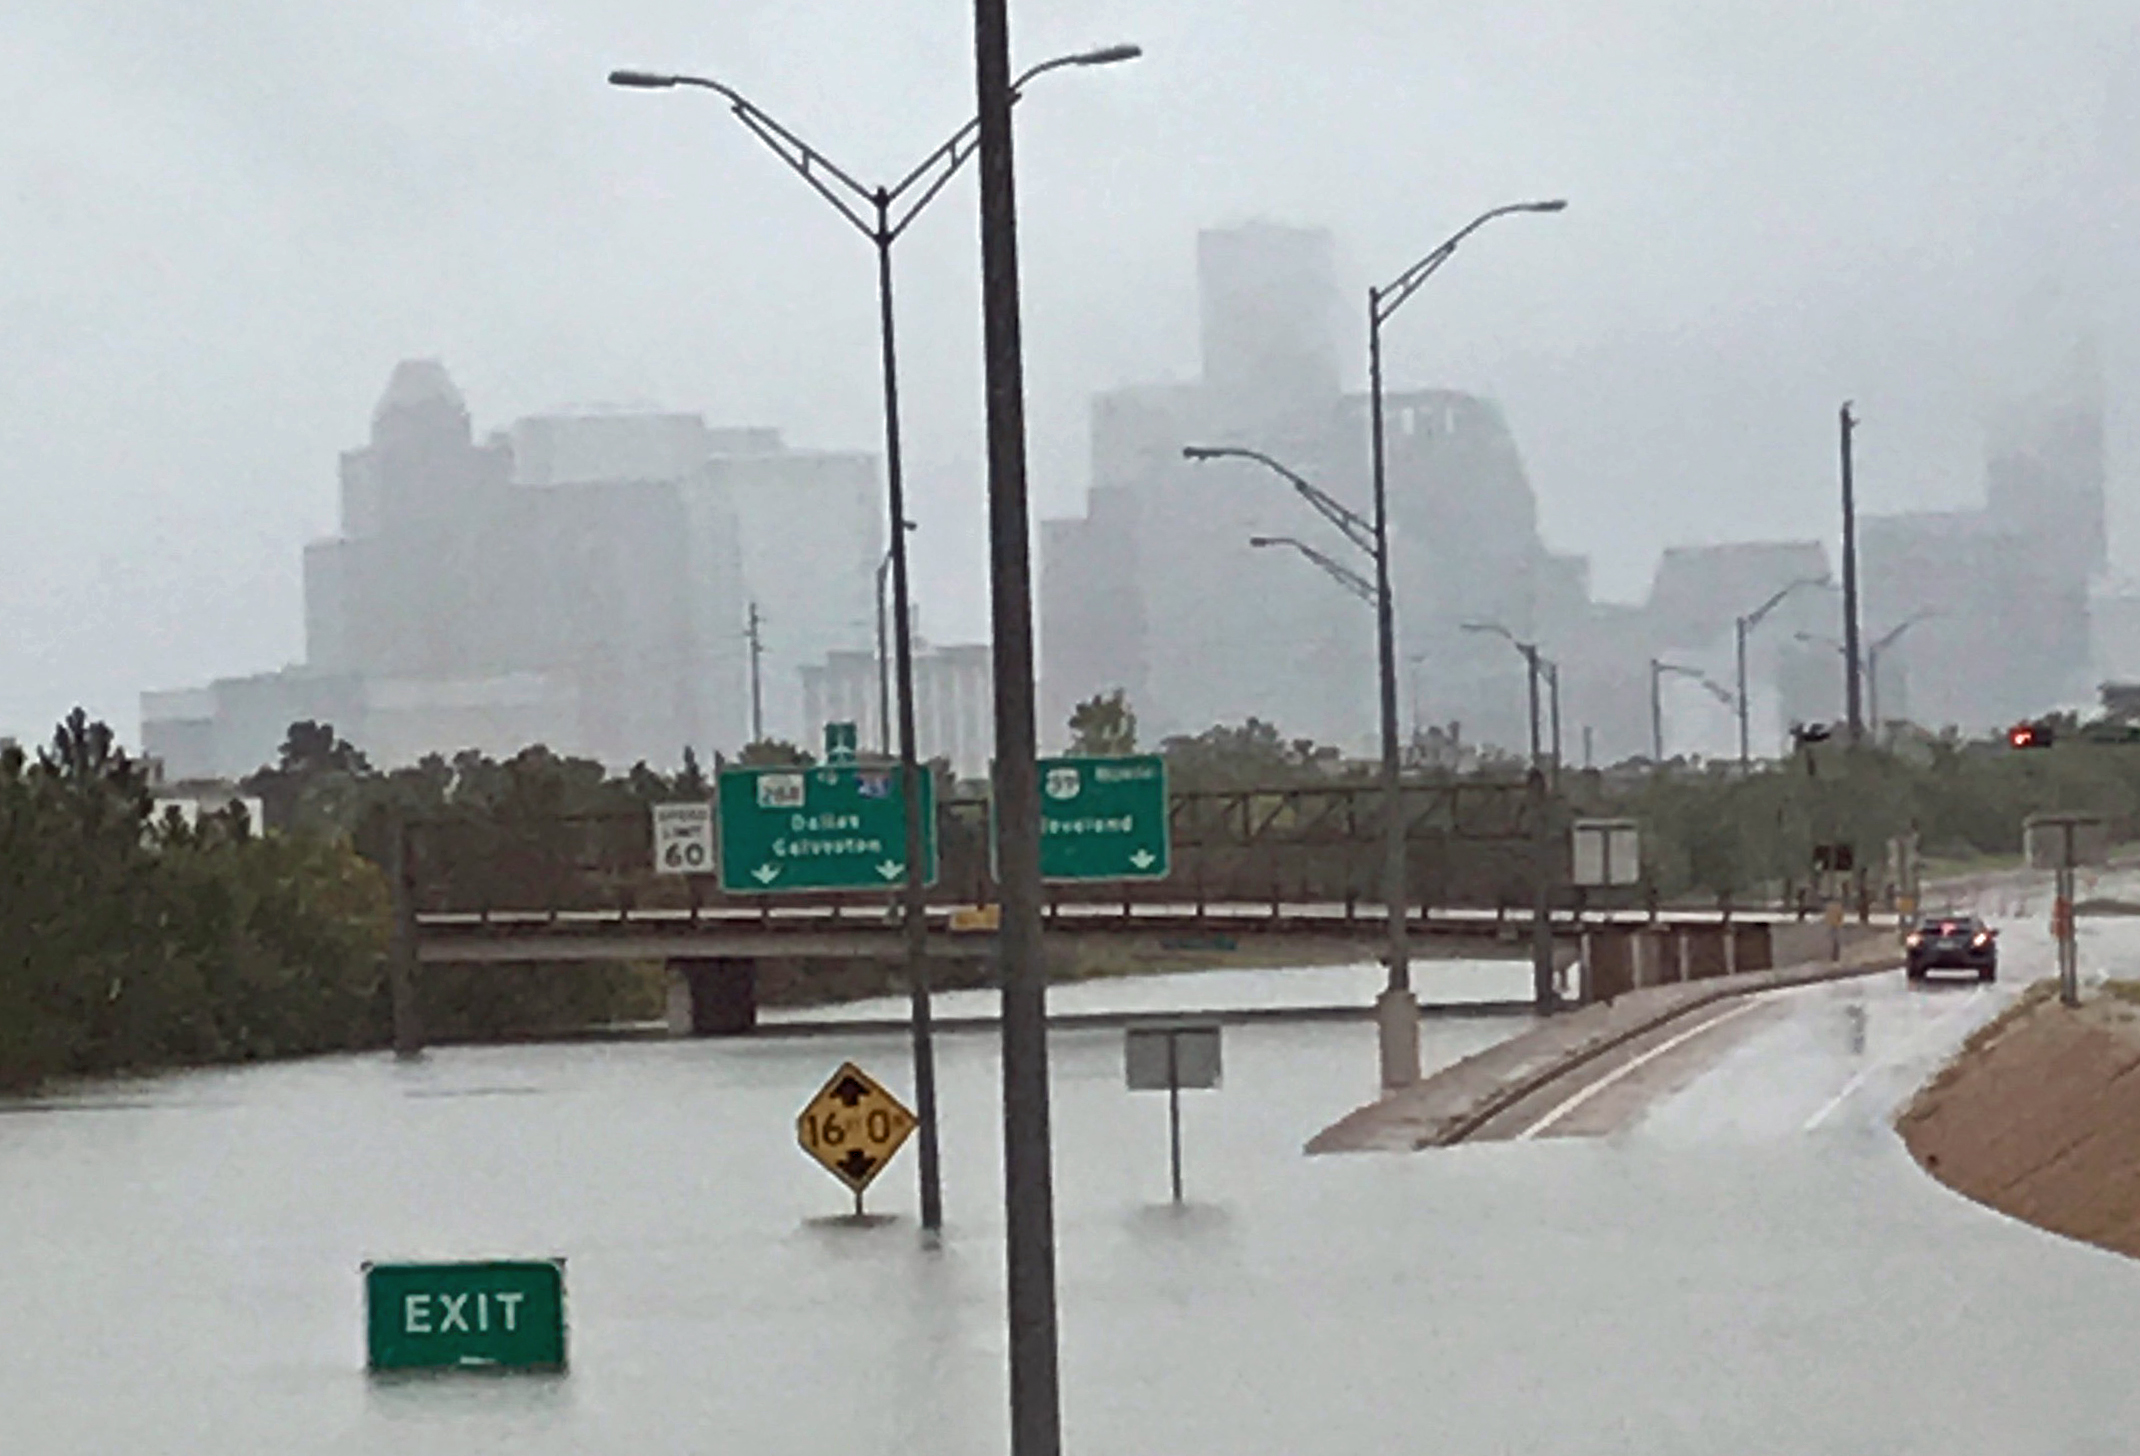 Flooded_Highway_Exits.jpg